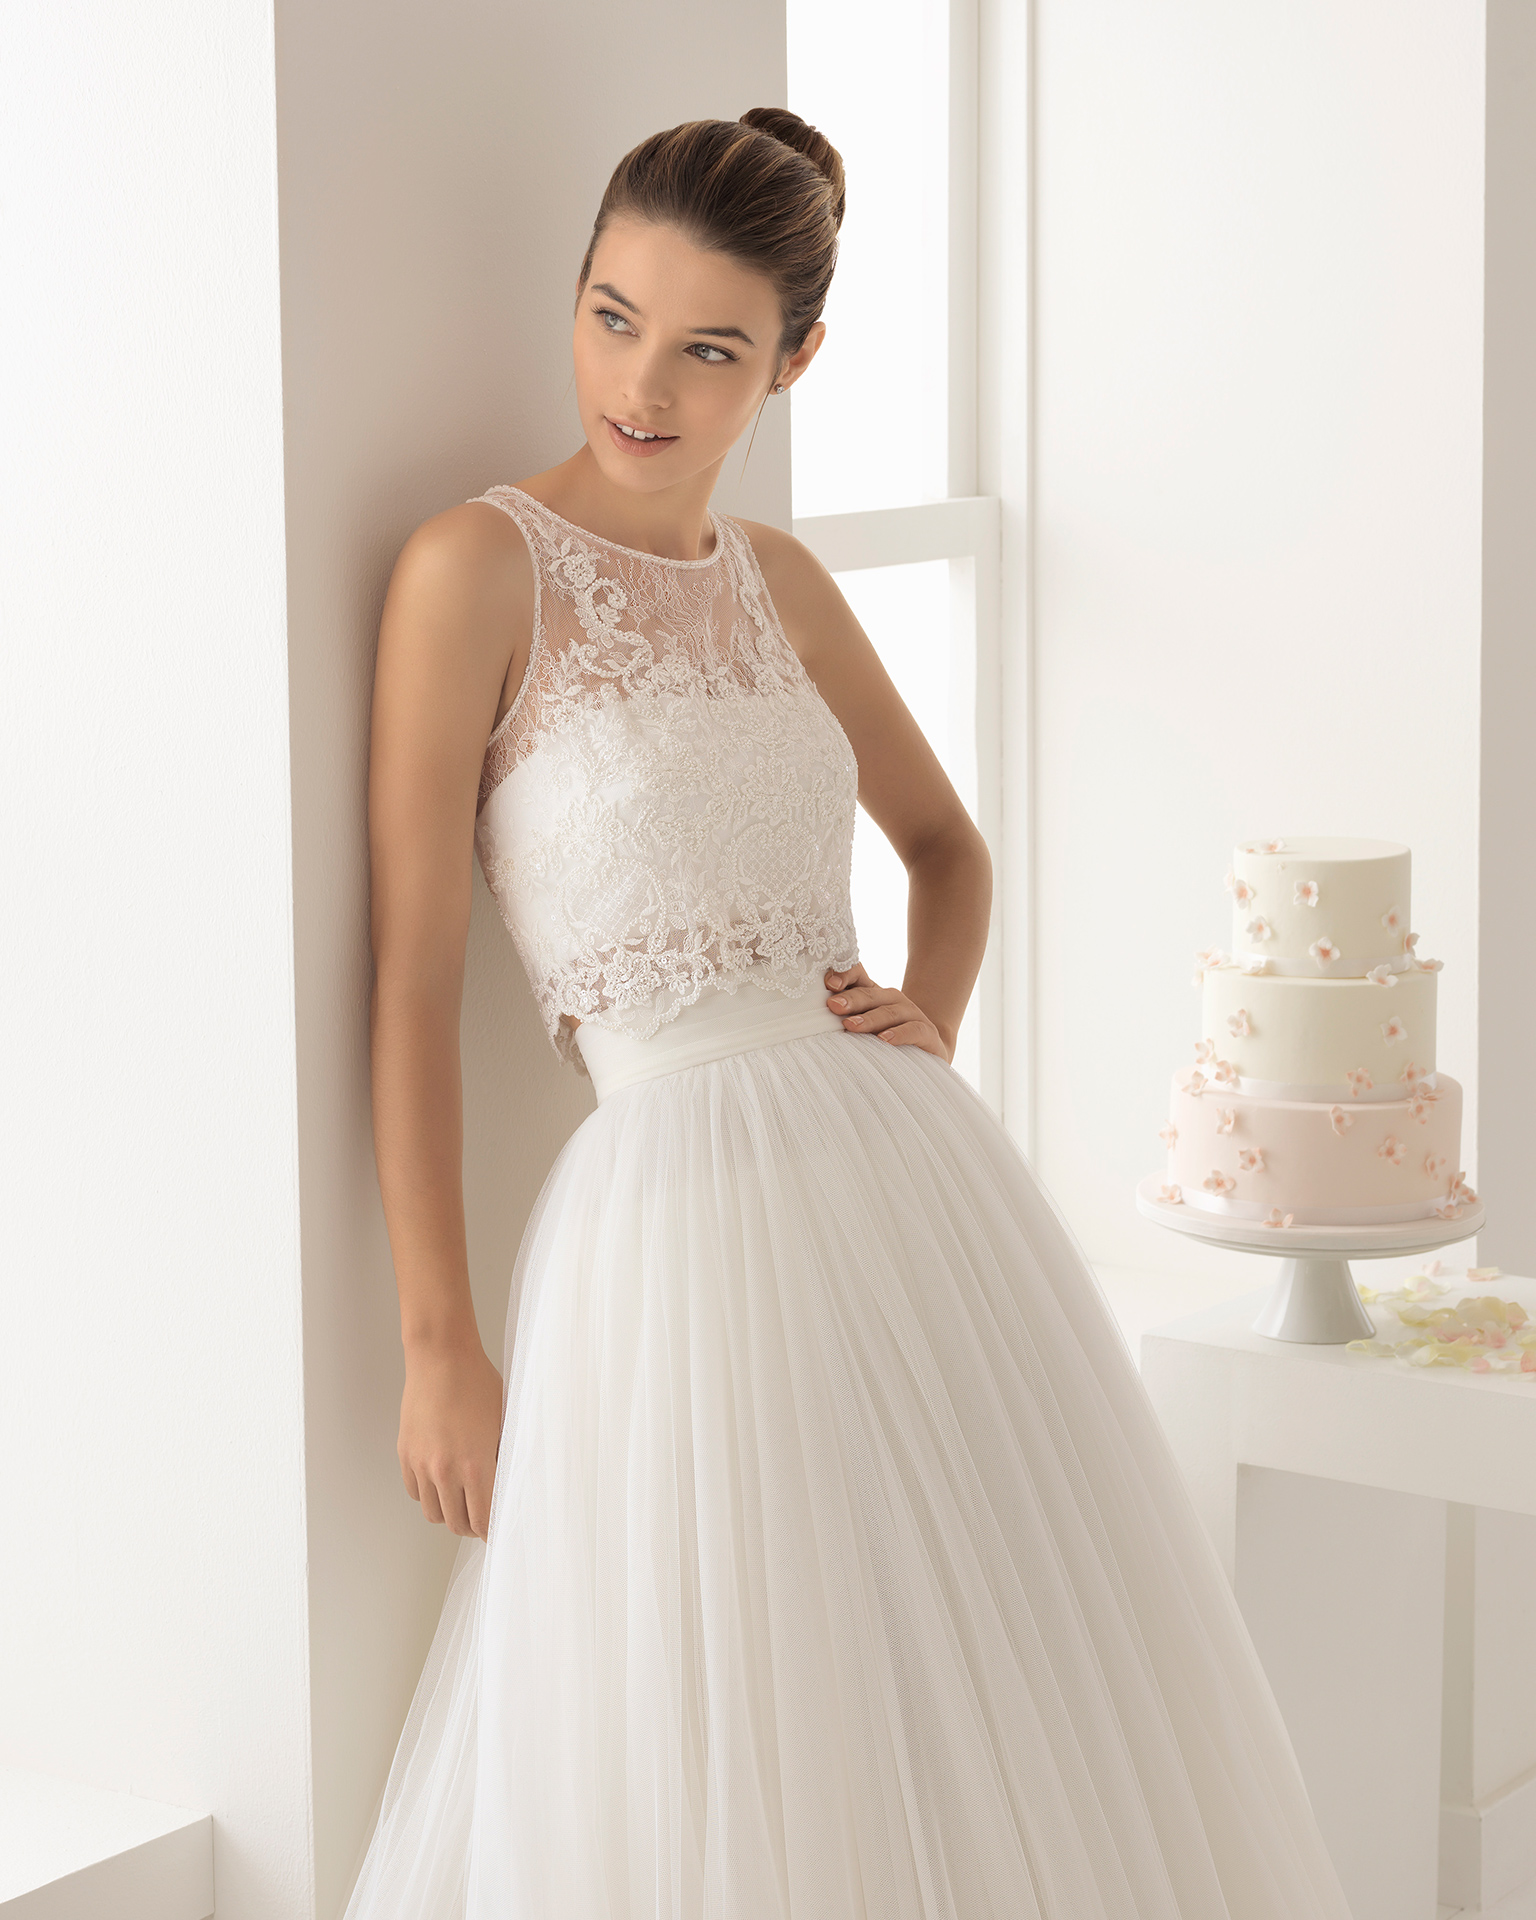 Boho-style tulle wedding dress with beaded lace crop top with front opening.